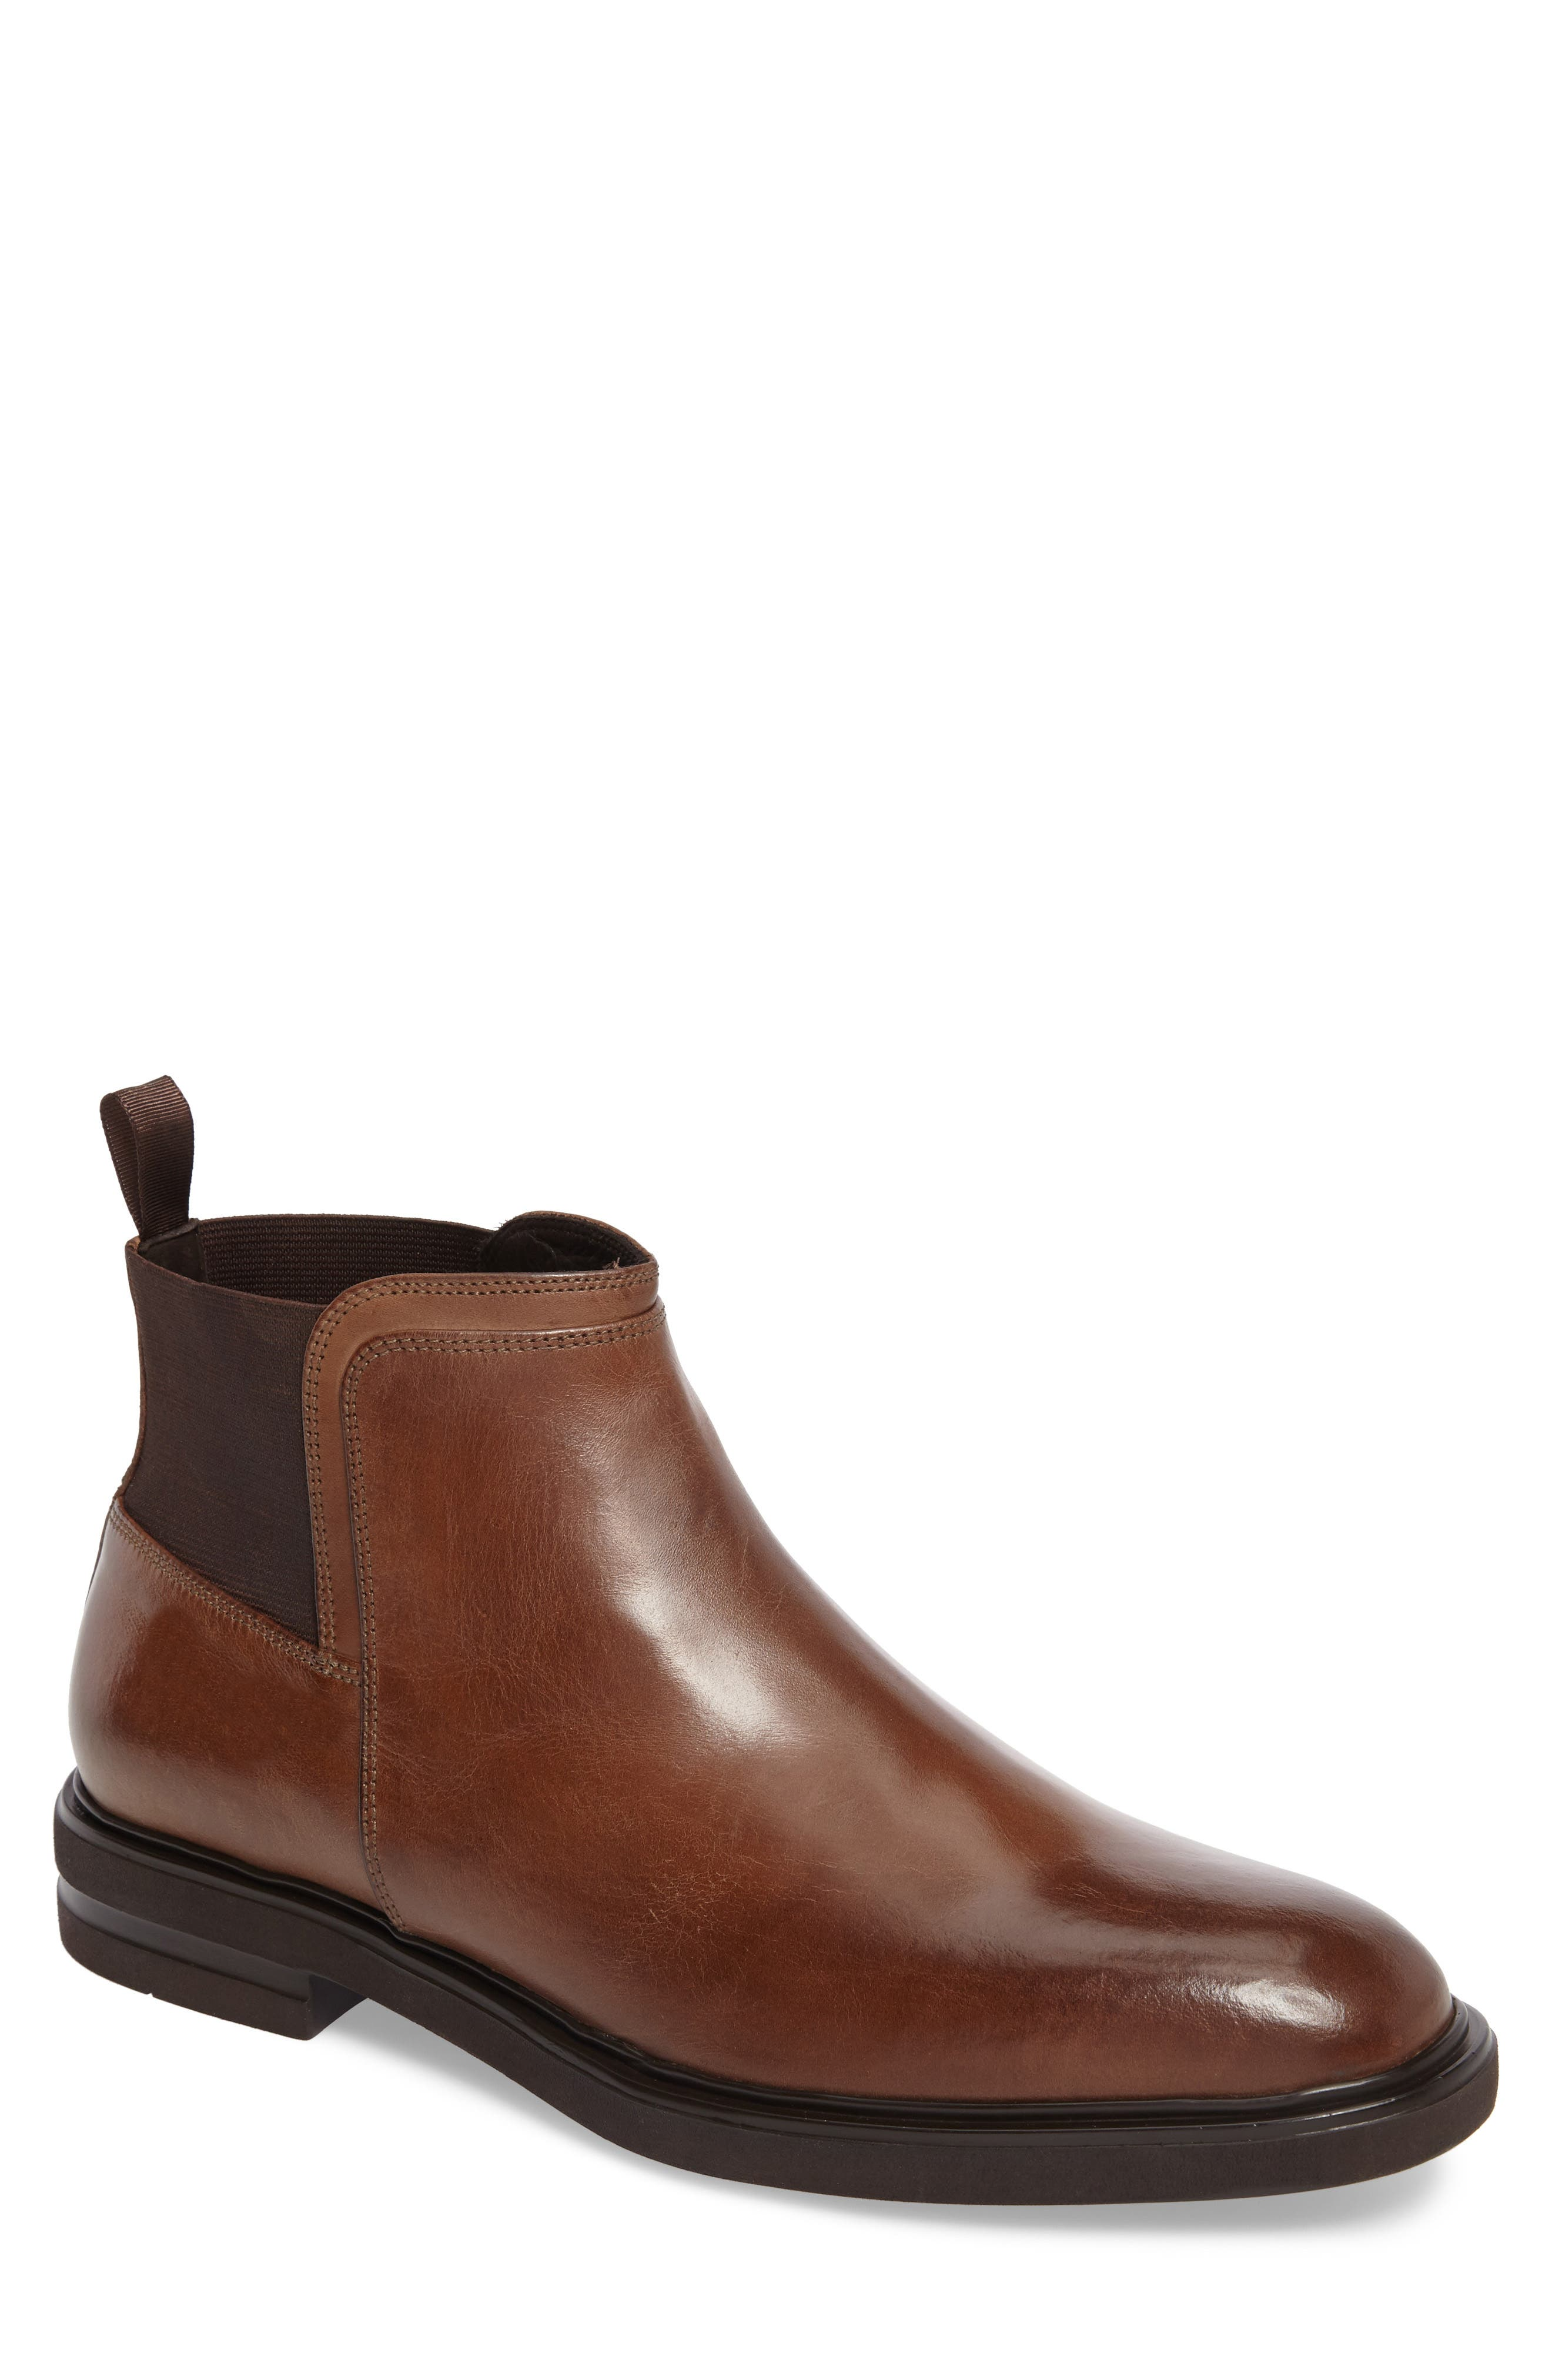 Enrico Chelsea Boot,                             Main thumbnail 1, color,                             Expresso